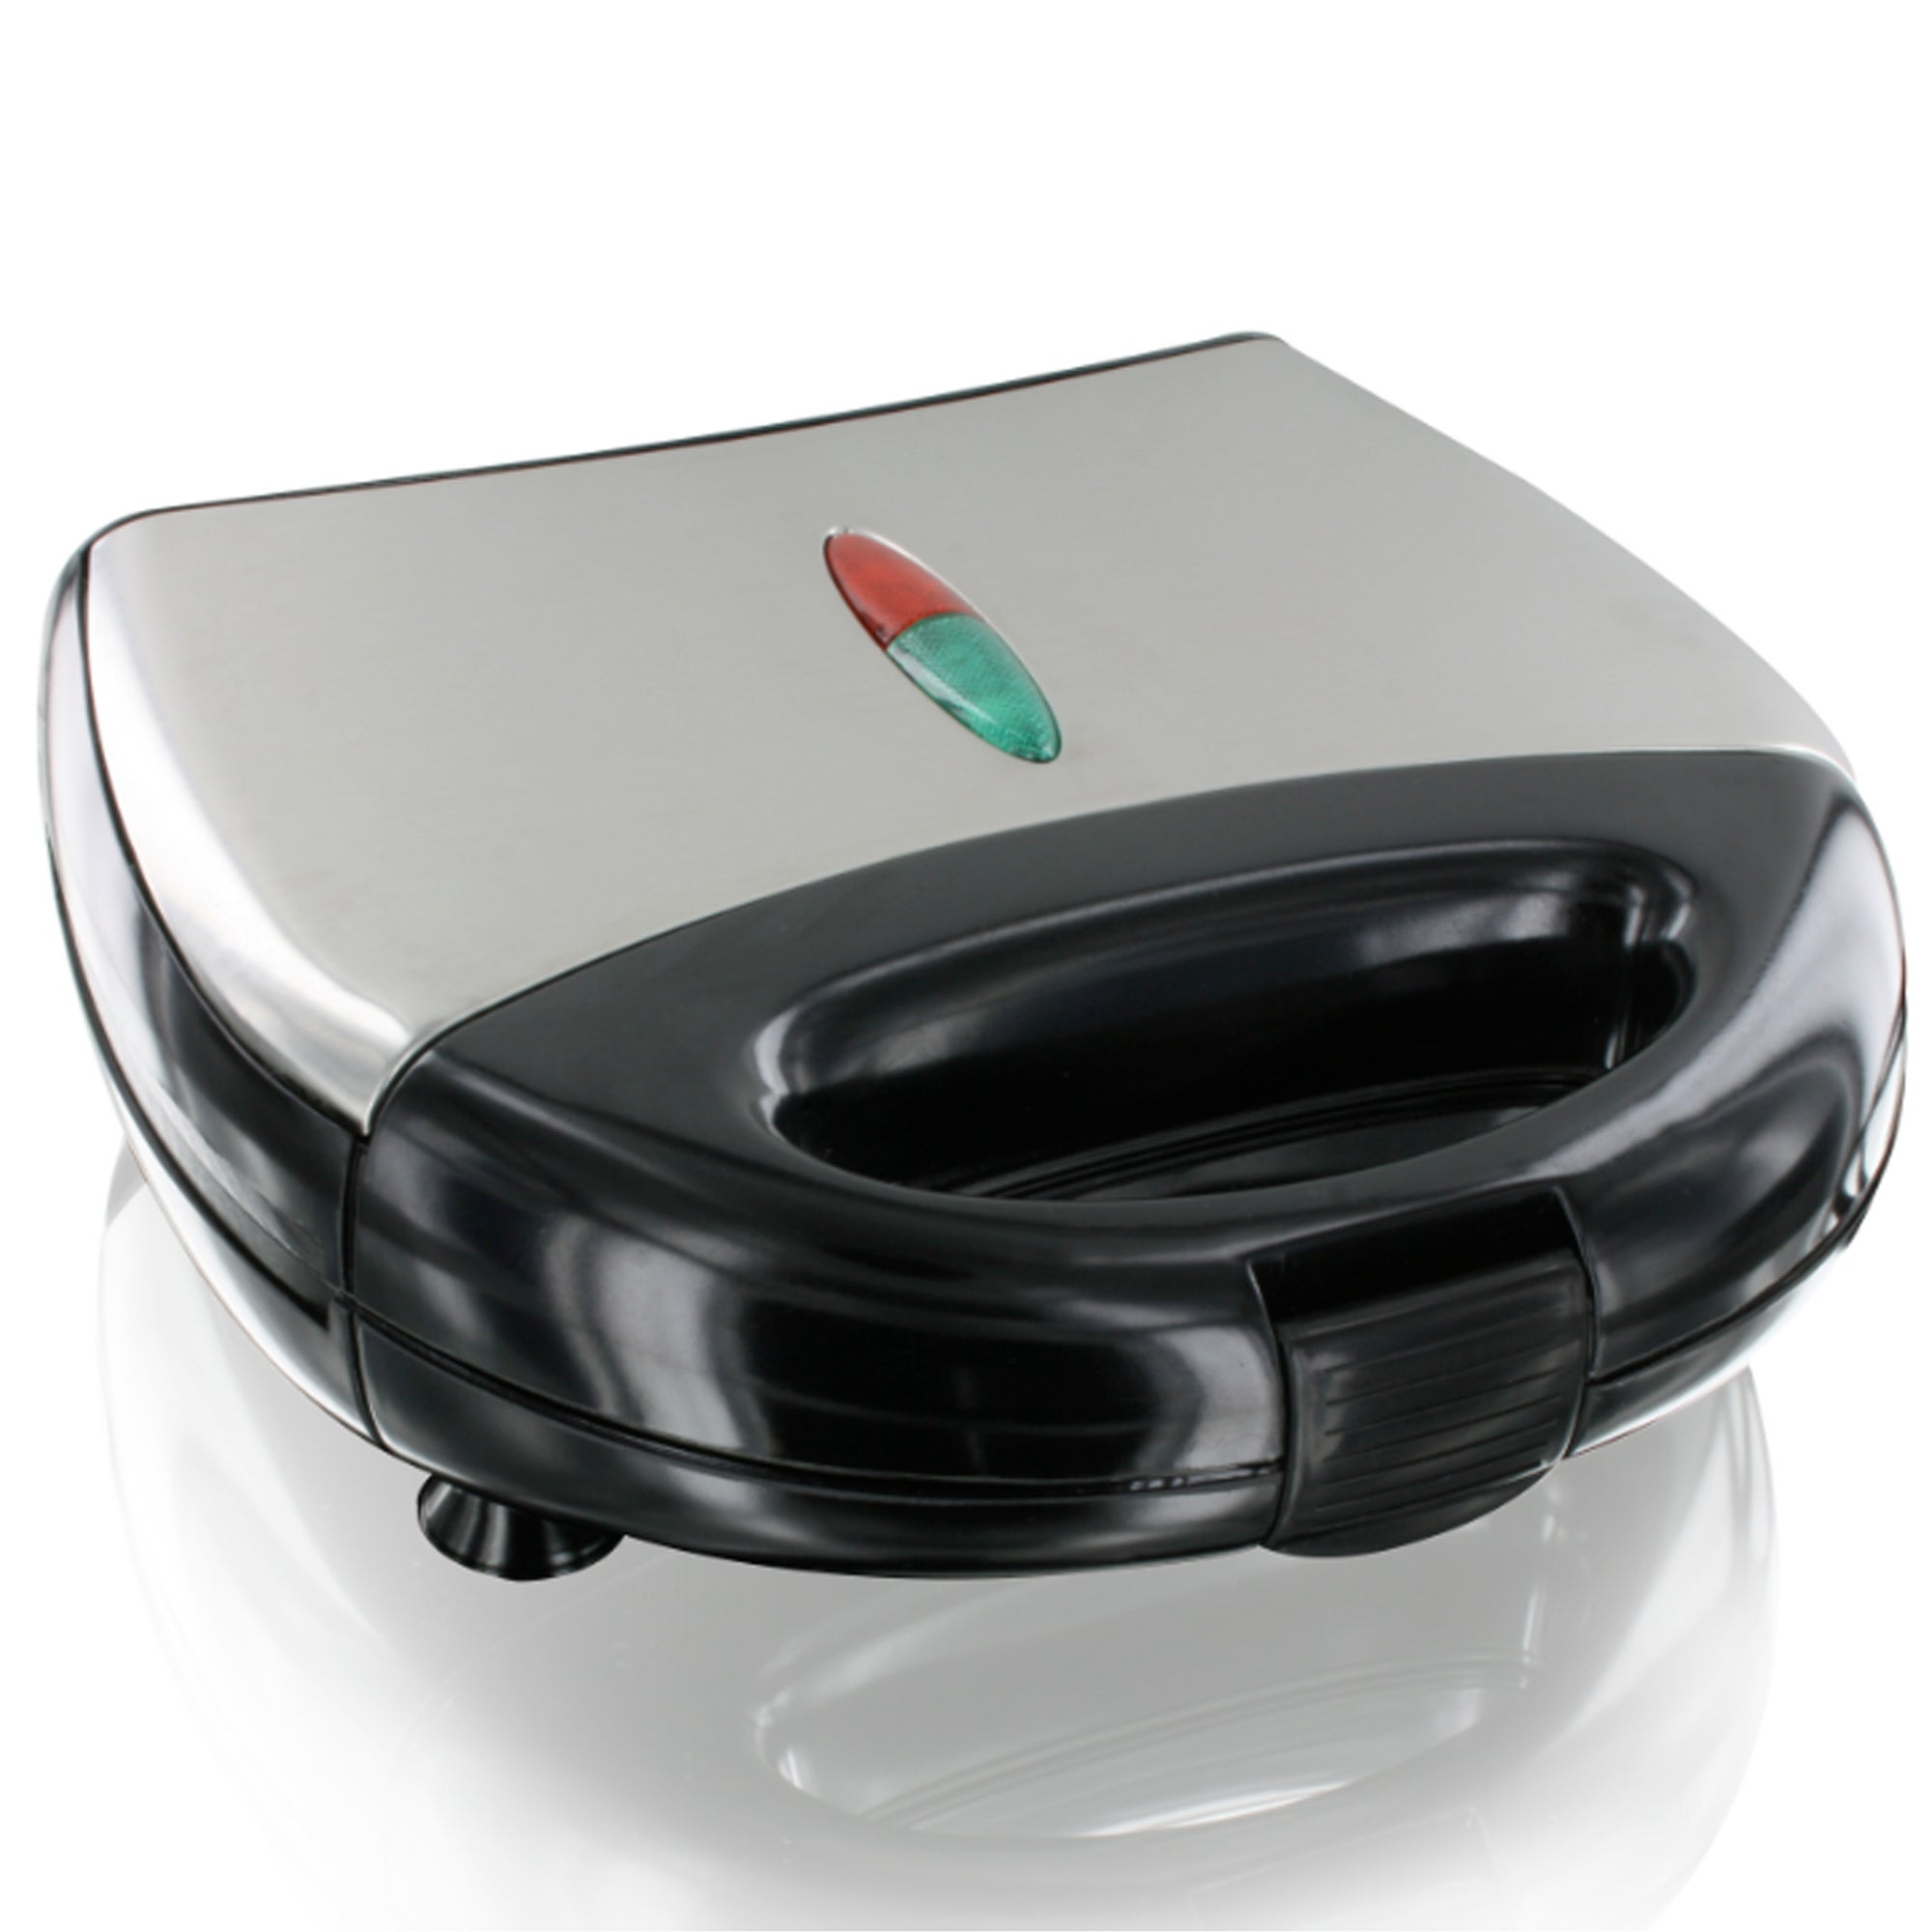 Toasted Sandwich Maker Shop For Cheap Sandwich And